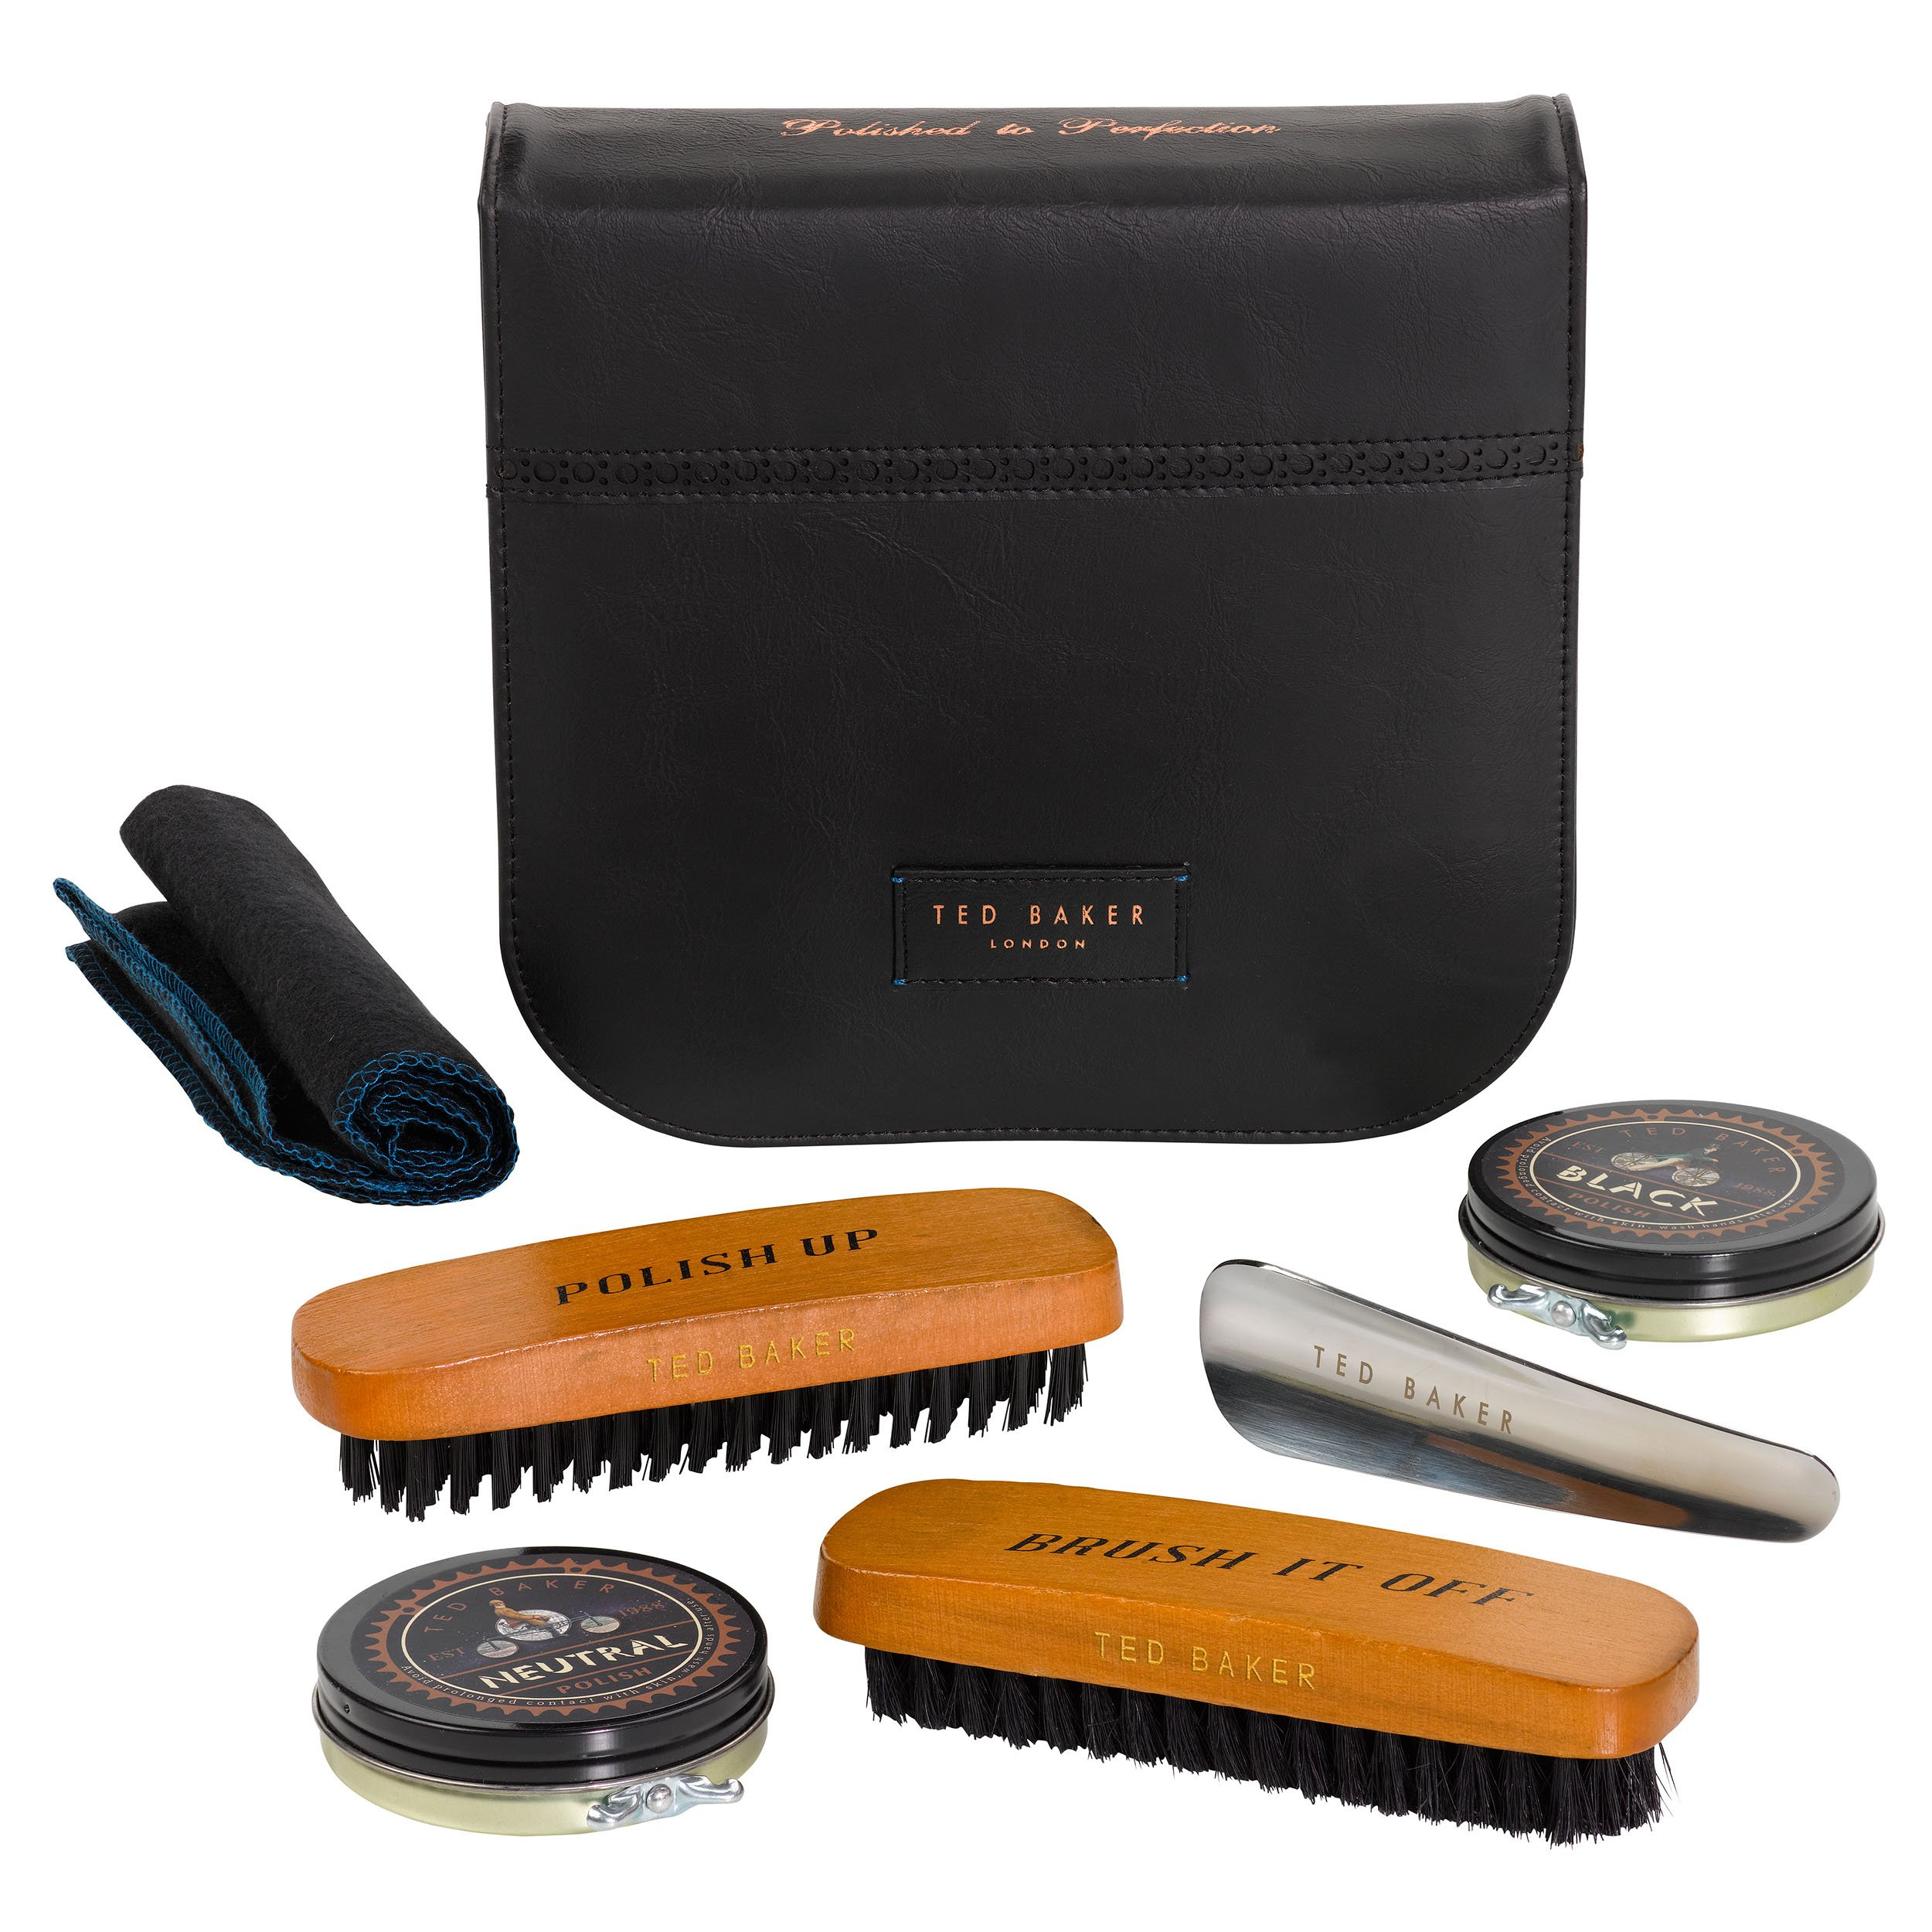 Ted Baker Shoe Shine Kit With Case, 5 Piece, Black